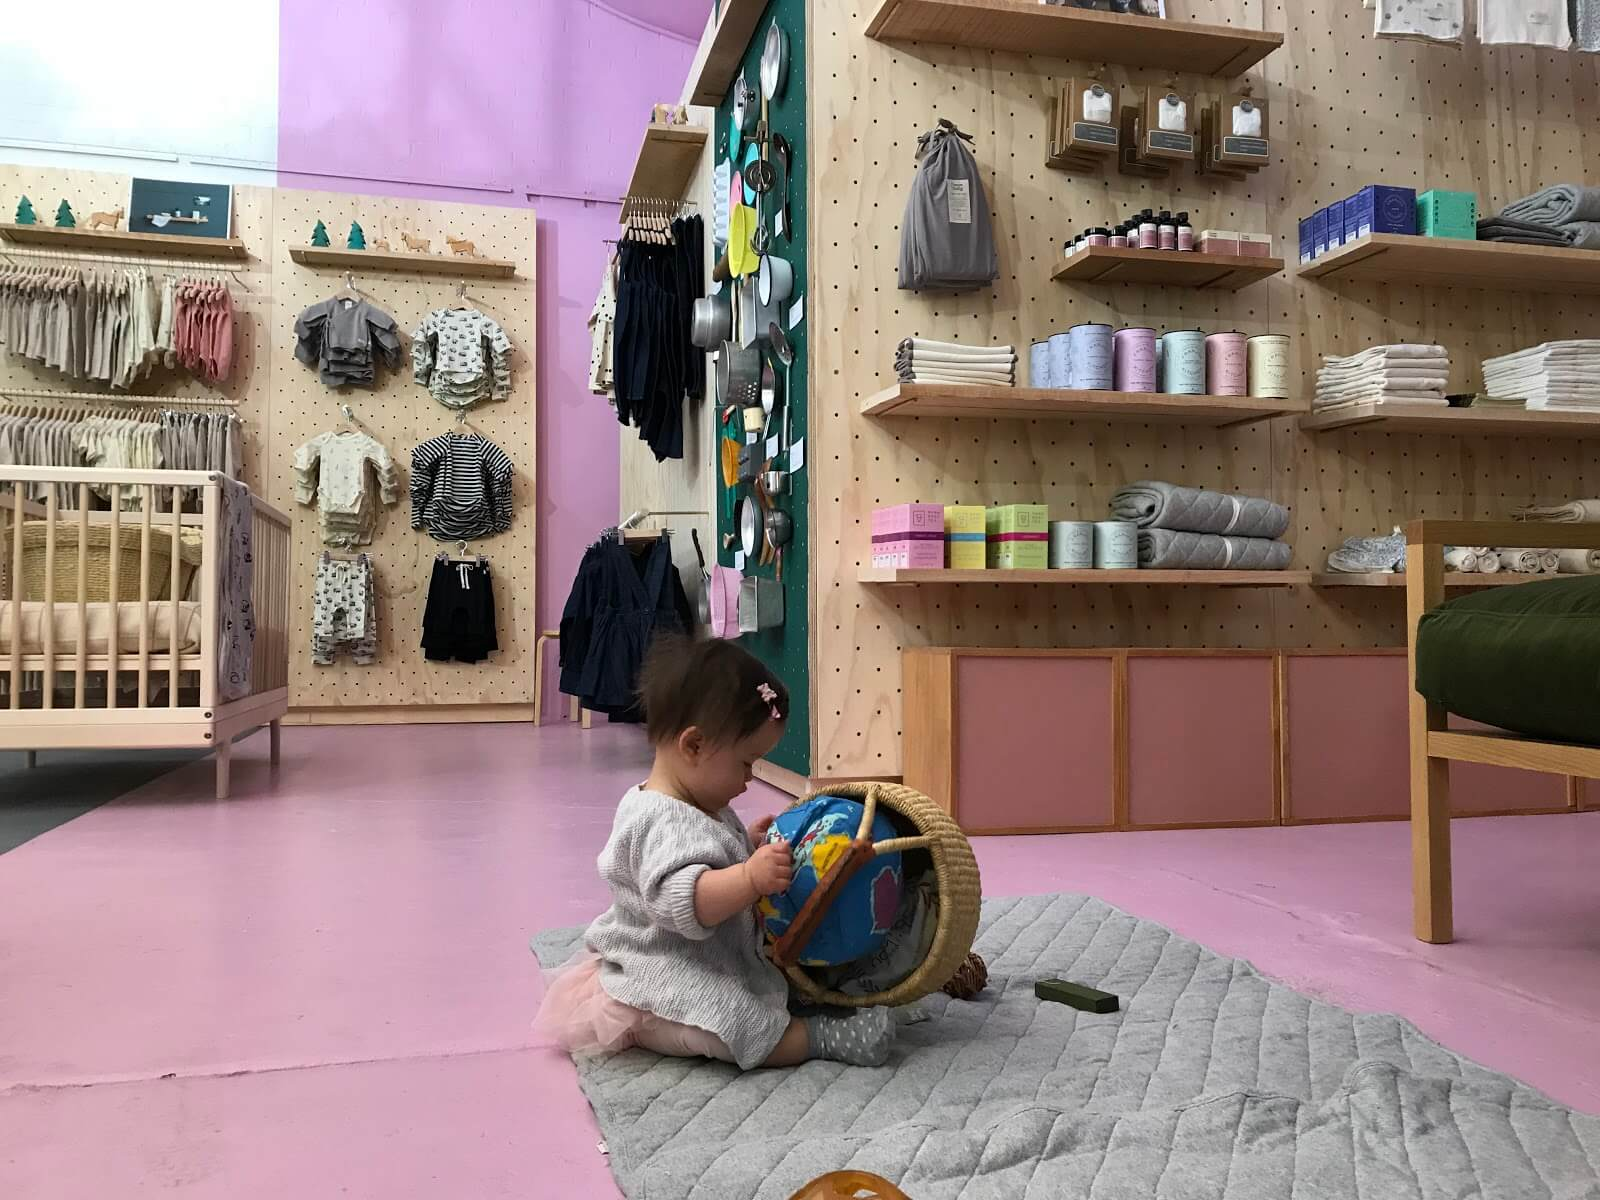 To create Baby Shop Melbourne Blog review we checked erlinelomantkgs831.ga reputation at lots of sites, including Siteadvisor and MyWOT. We found that erlinelomantkgs831.ga is safe for children and does not look fraudulent.